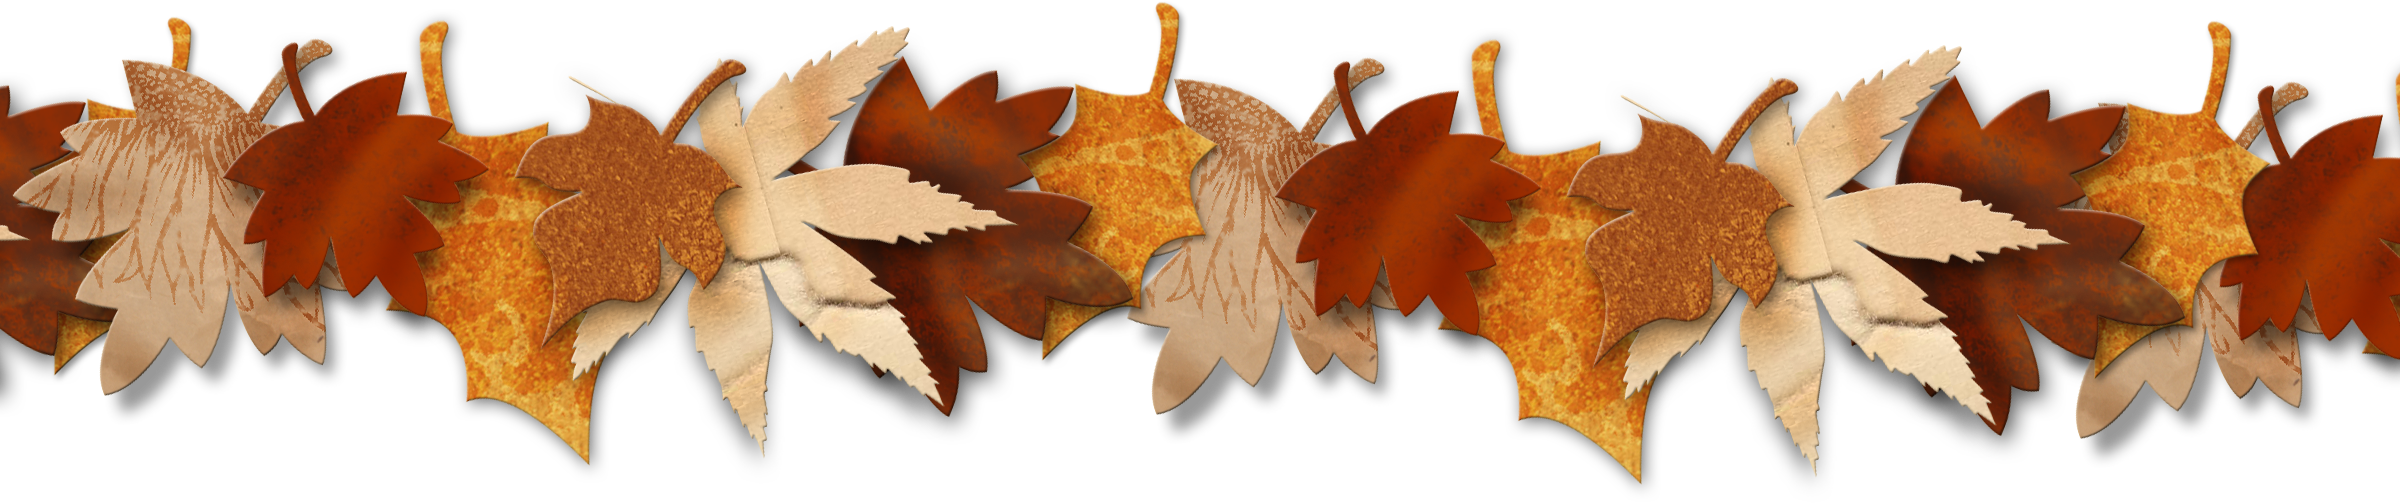 fall leaves and pumpkins png